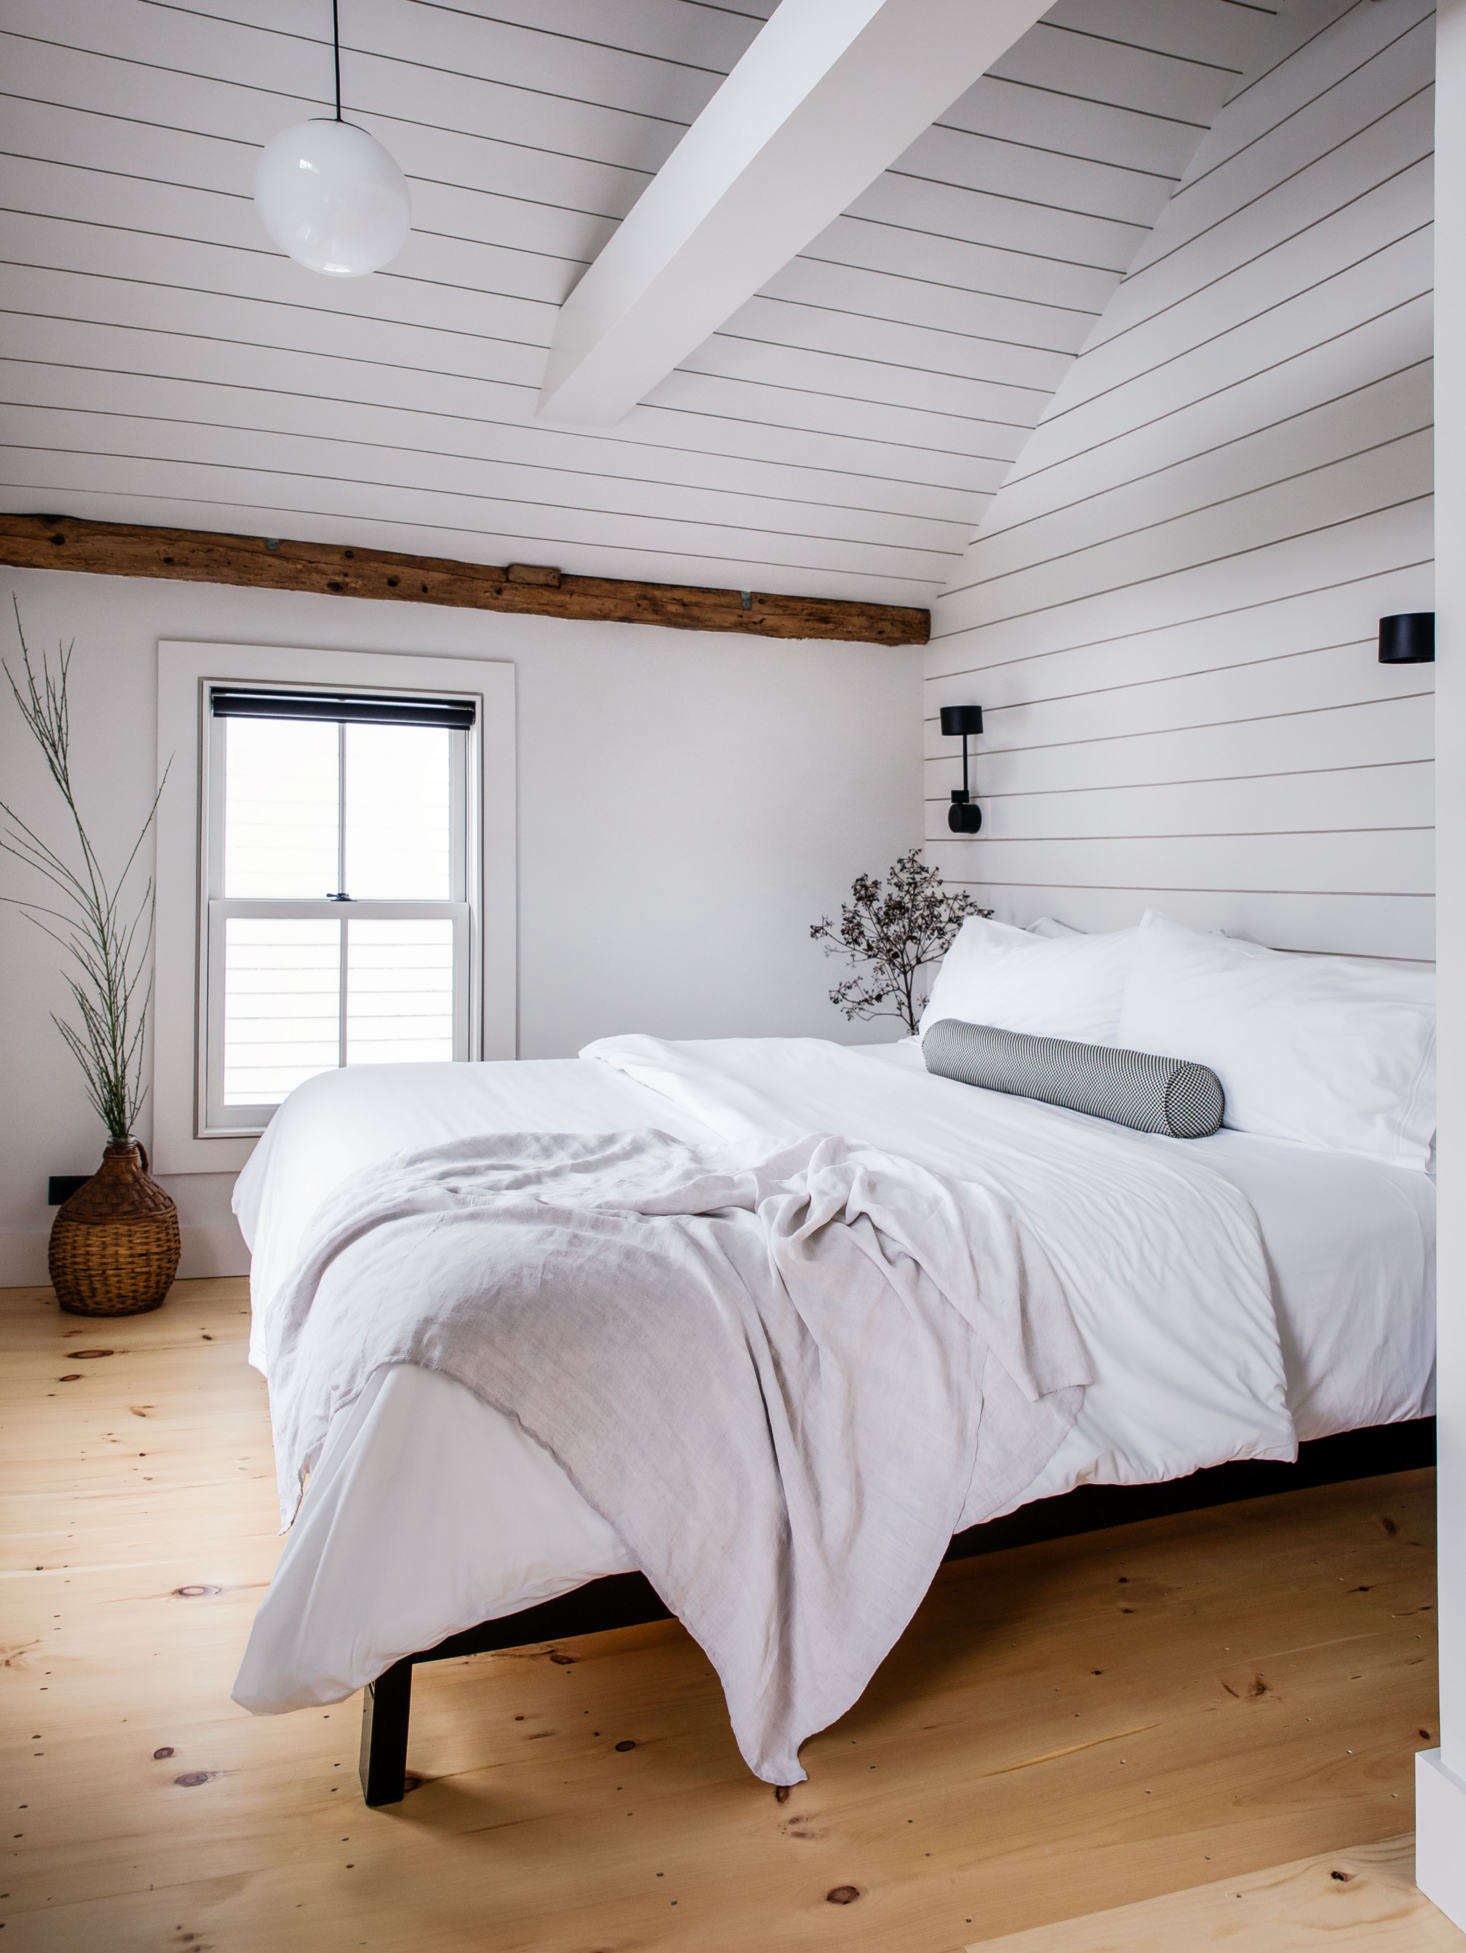 In the upstairs master bedroom, the couple also installed shiplap to accentuate the lofty ceiling. The pendant is Schoolhouse&#8